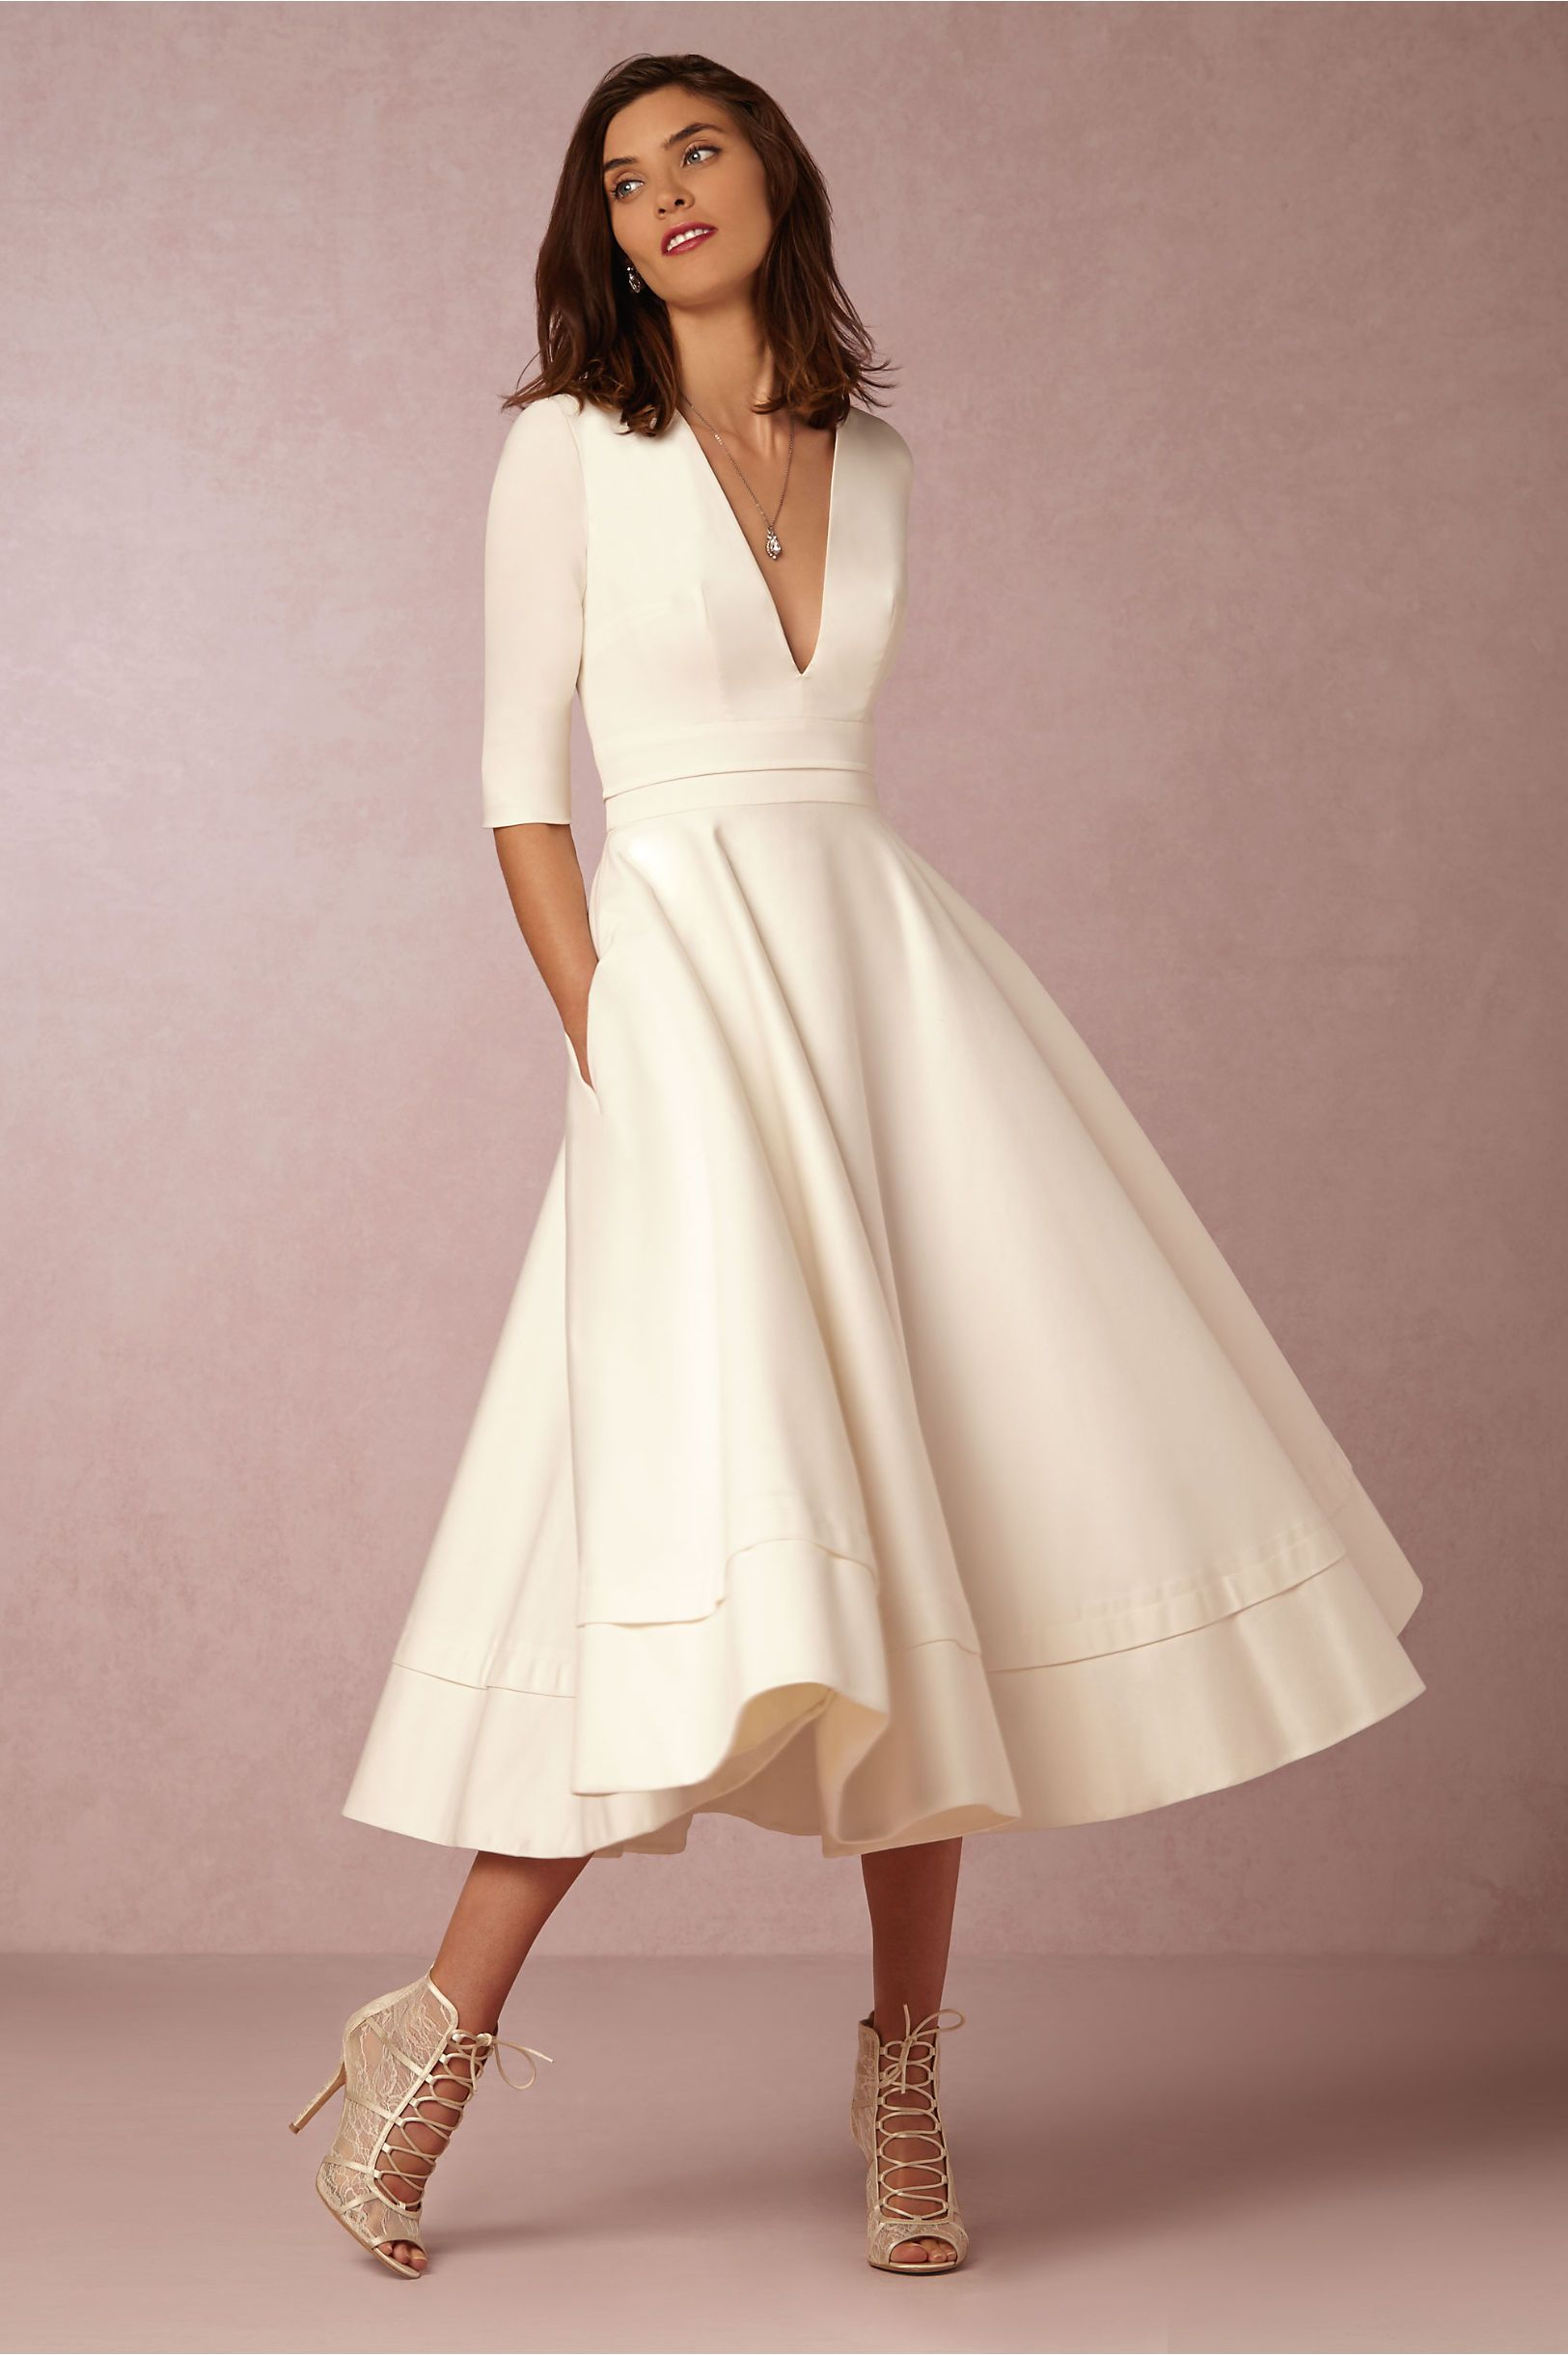 21 Ridiculously Stunning Long Sleeved Wedding Dresses Midi Dress Party Affordable Wedding Dresses Affordable Dresses [ 2440 x 1625 Pixel ]